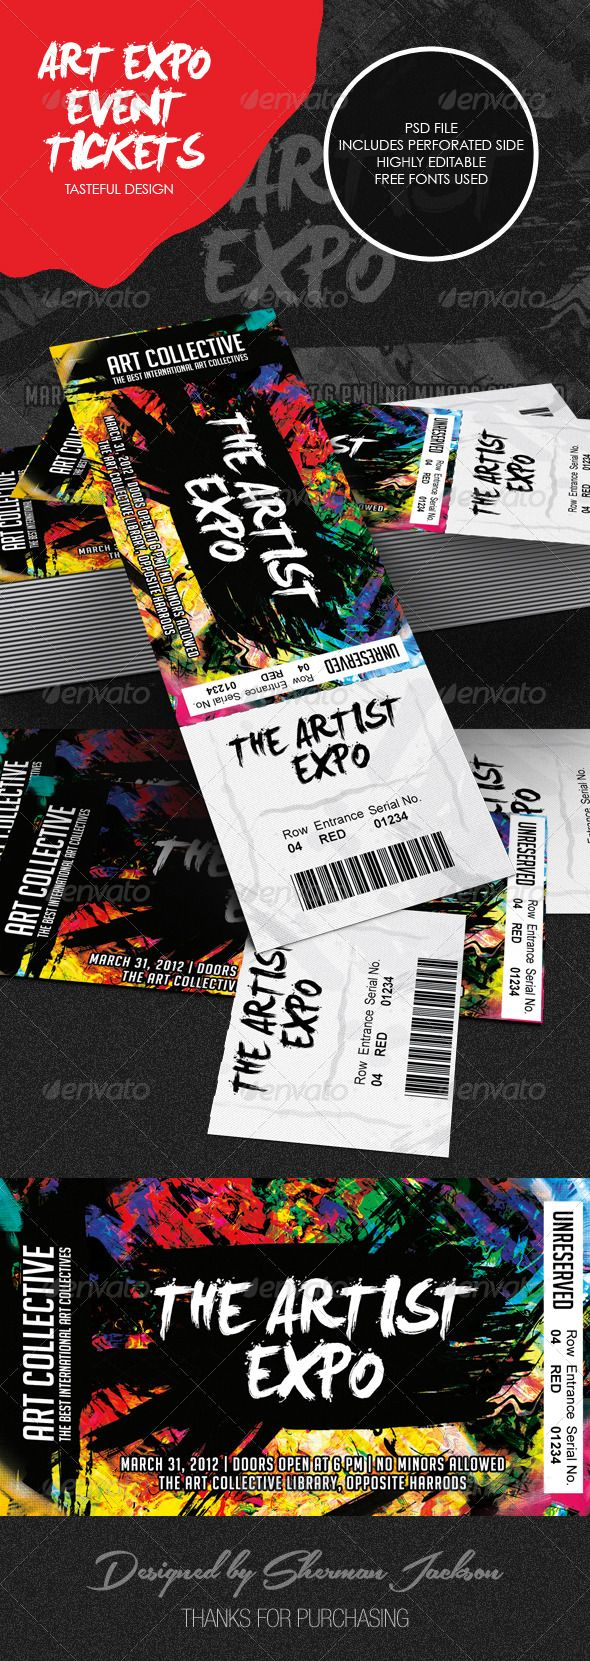 Best 25 Event tickets ideas – Free Event Ticket Maker